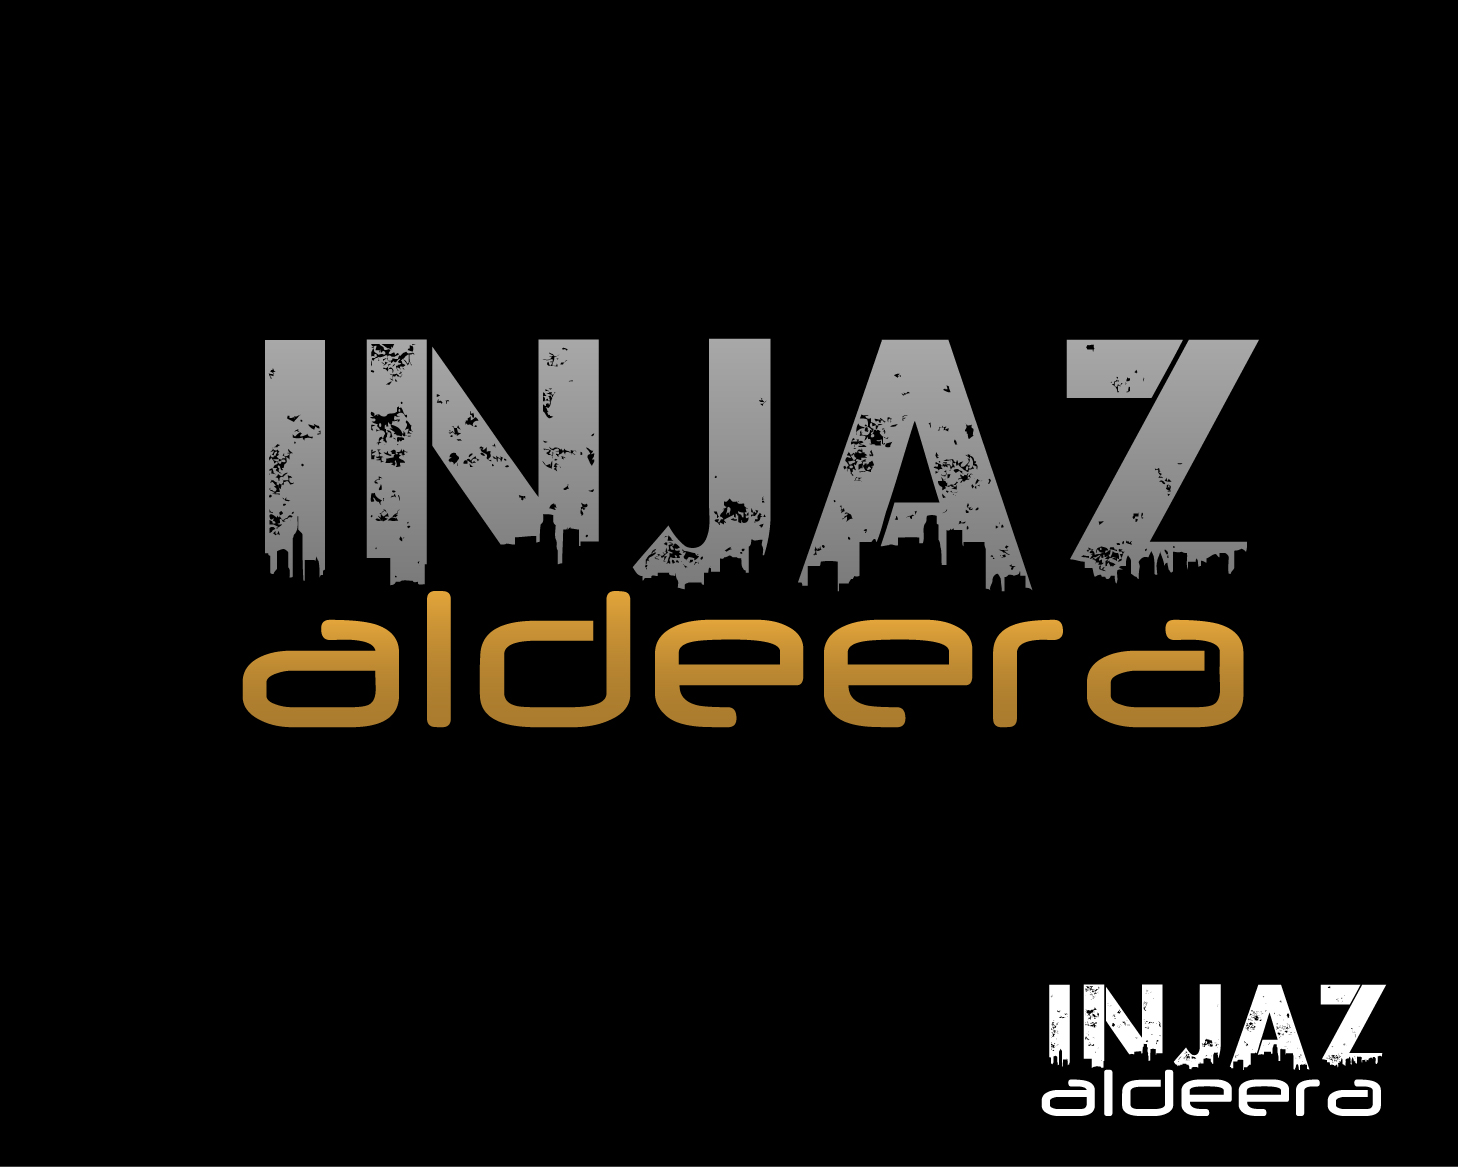 Logo Design by VENTSISLAV KOVACHEV - Entry No. 45 in the Logo Design Contest Fun Logo Design for Injaz aldeera.